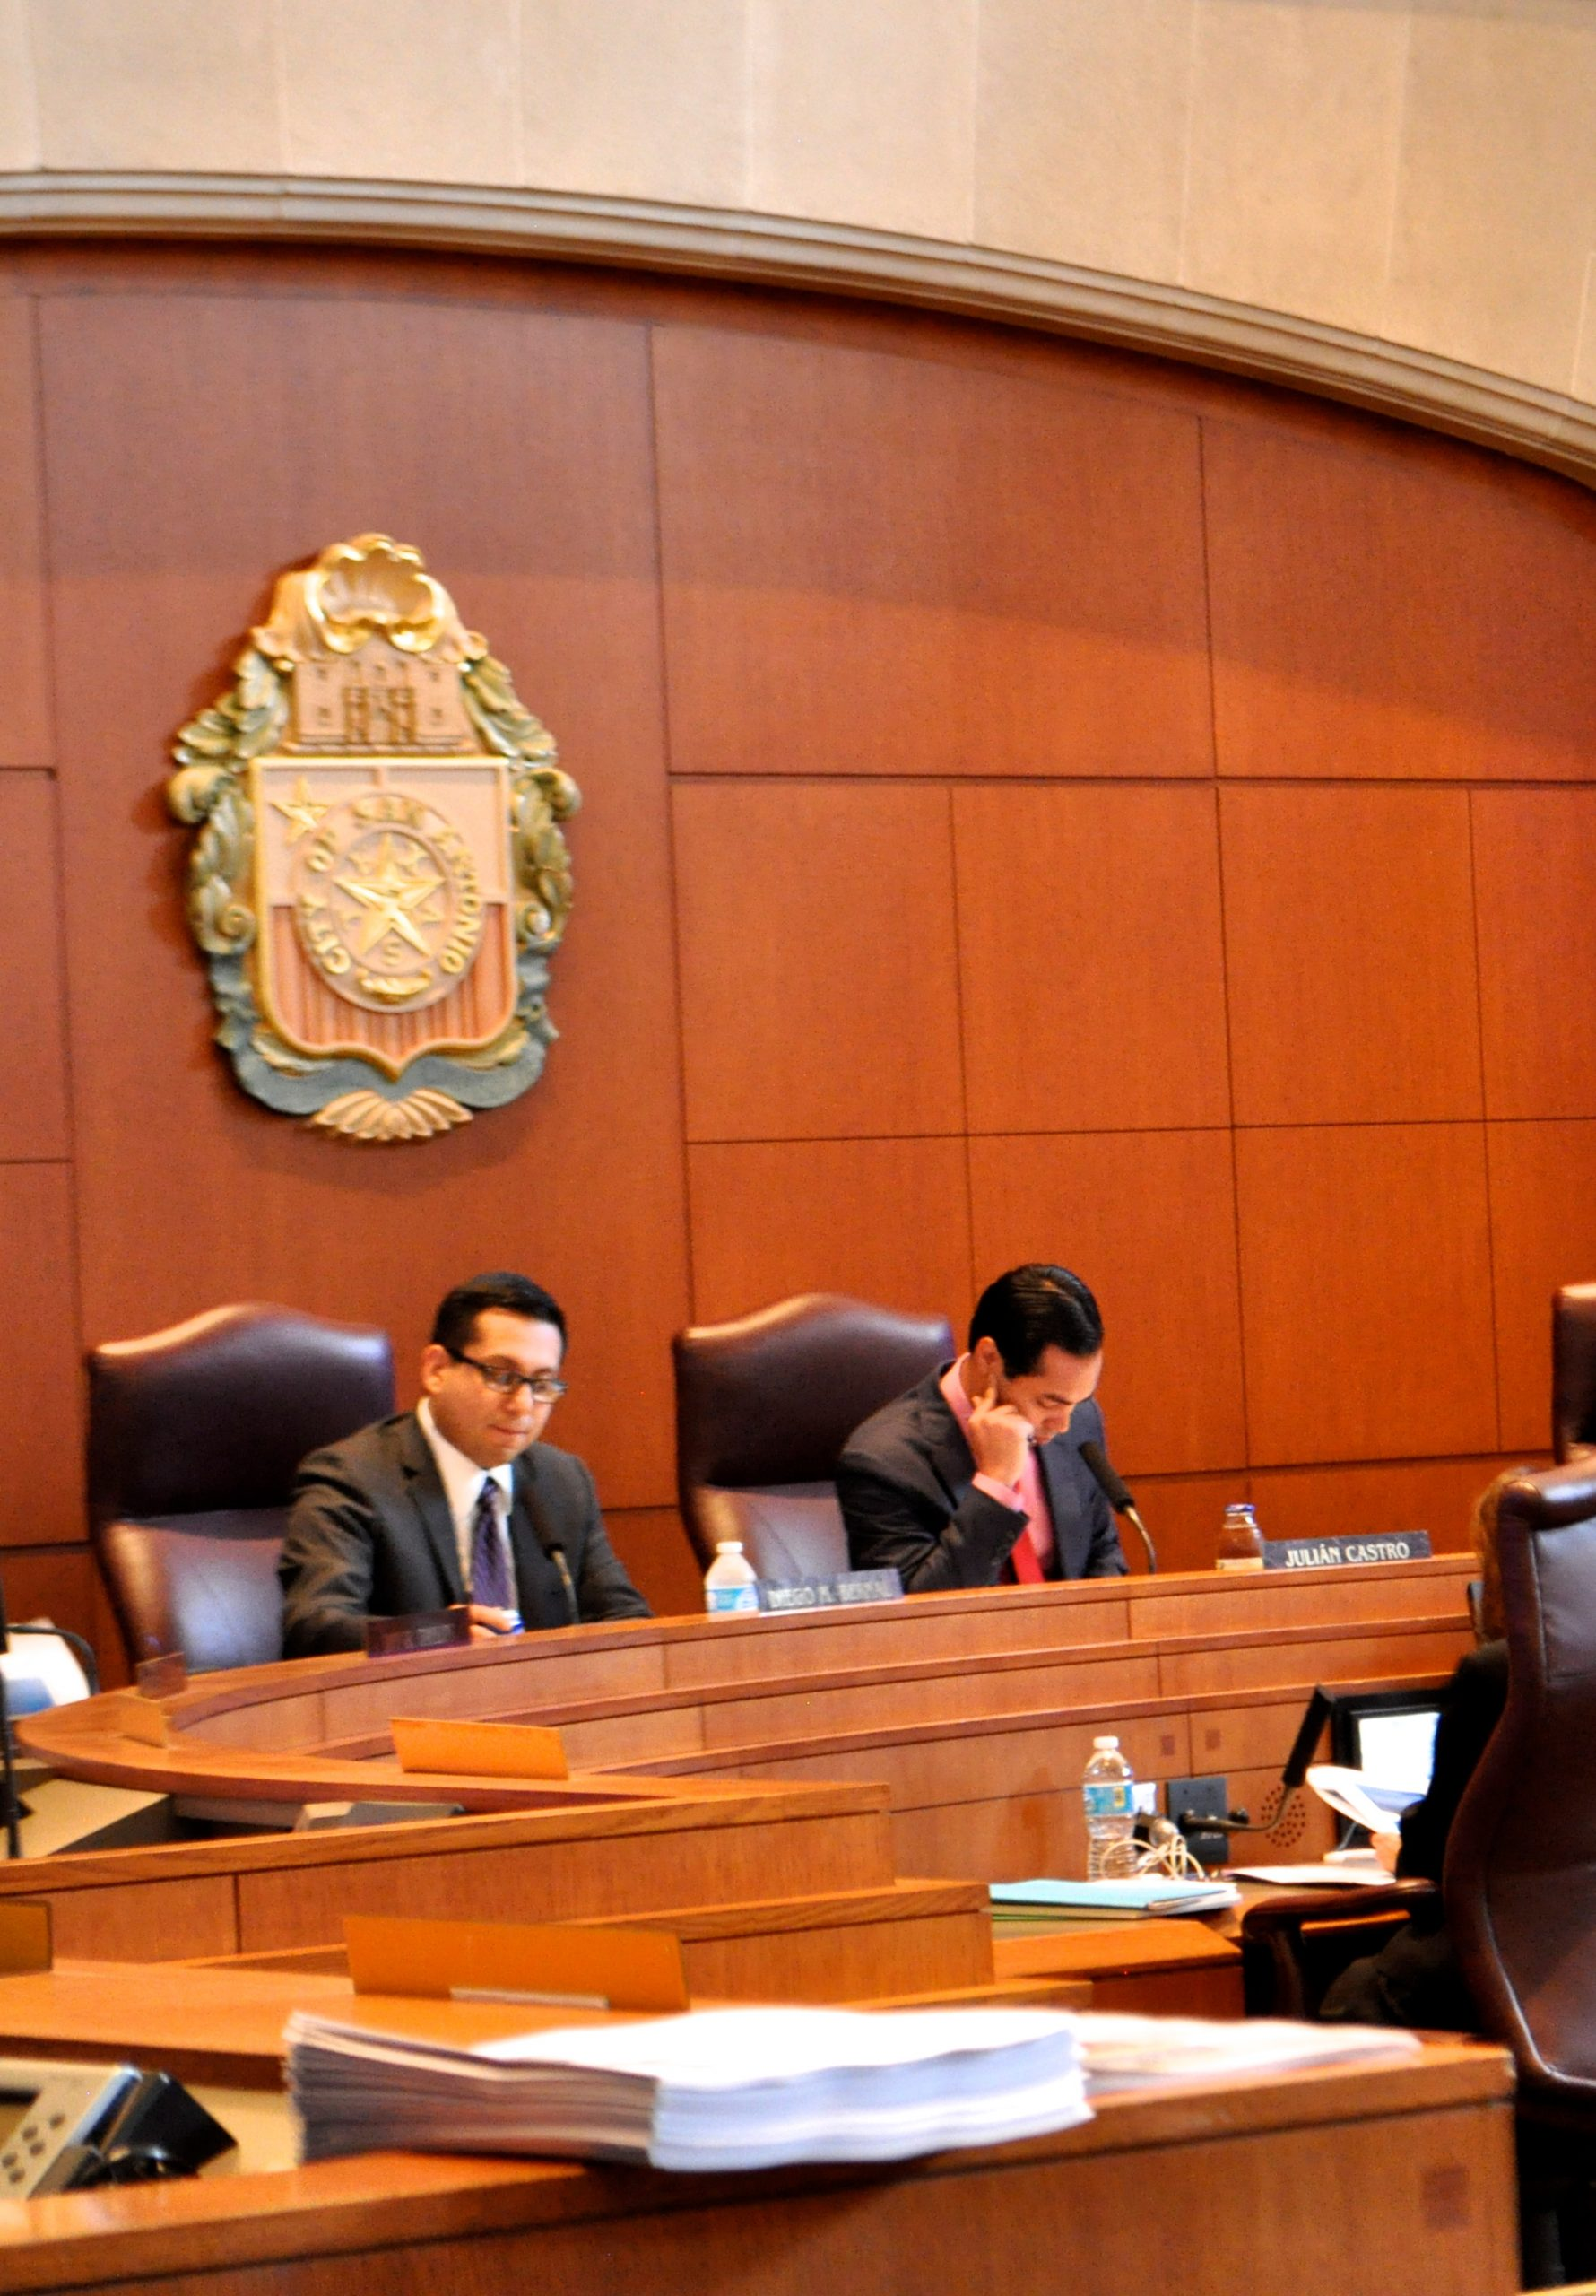 Councilman Bernal (left) and Mayor Castro listen while City Attorney Michael Bernard explains the NDO. Photo by Iris Dimmick.